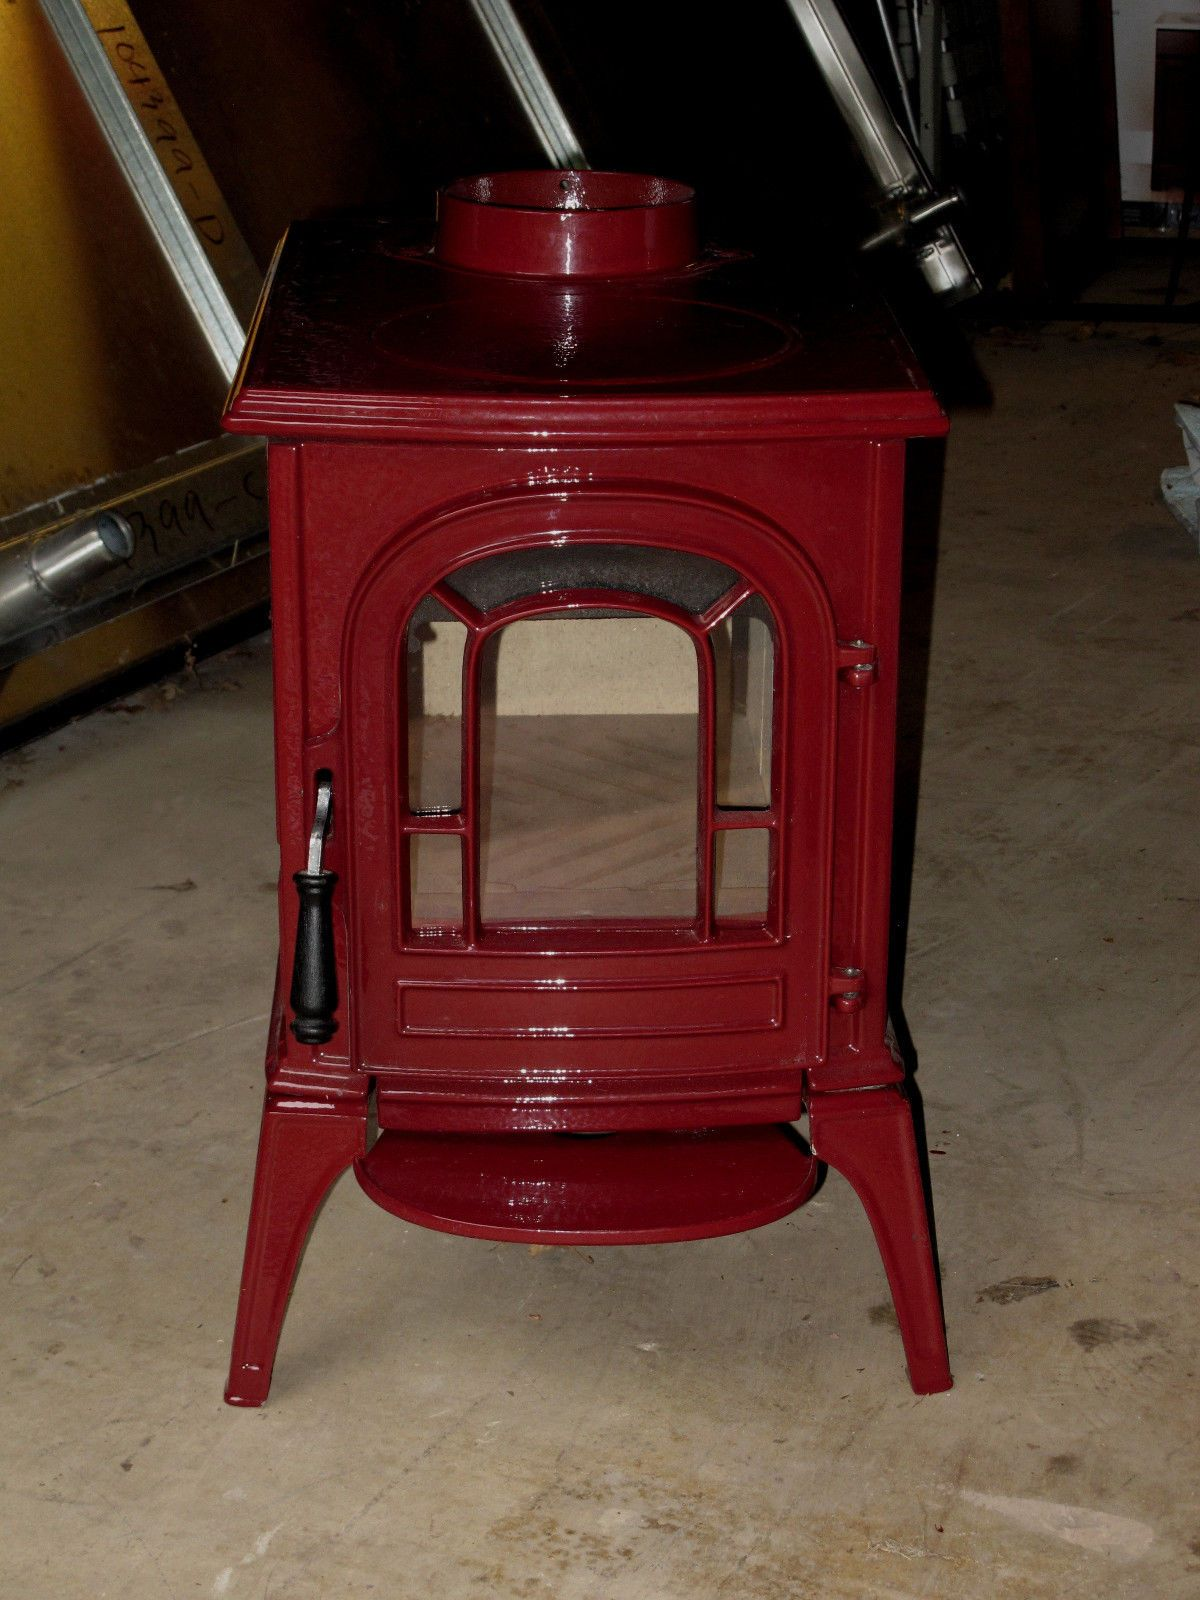 vermont casting wood stove aspen 1920 model burgundy color new